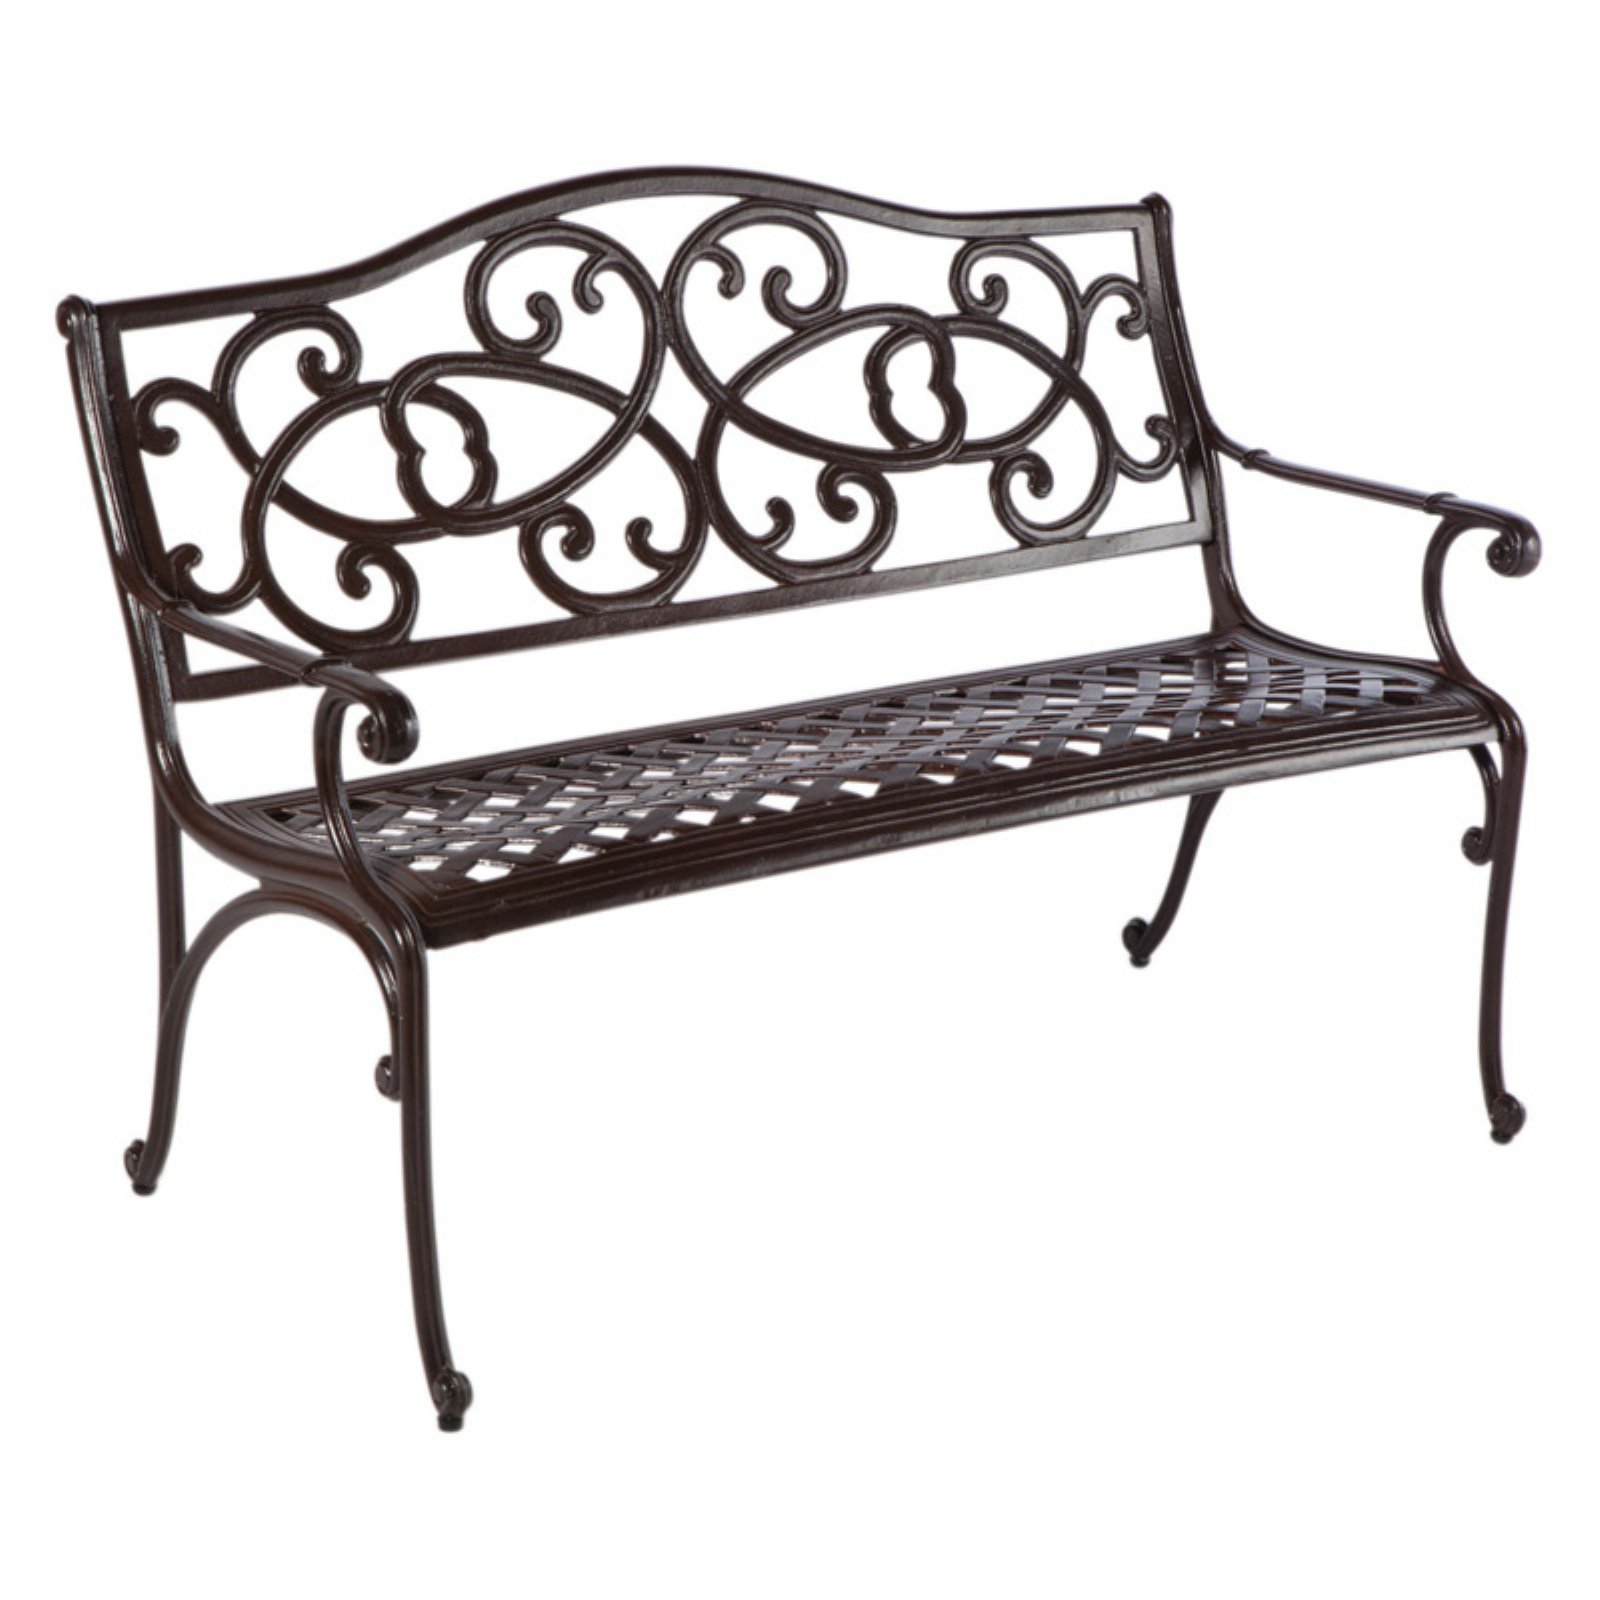 Alfresco Daffodil 4 ft. Cast Aluminum Garden Bench - Aged...